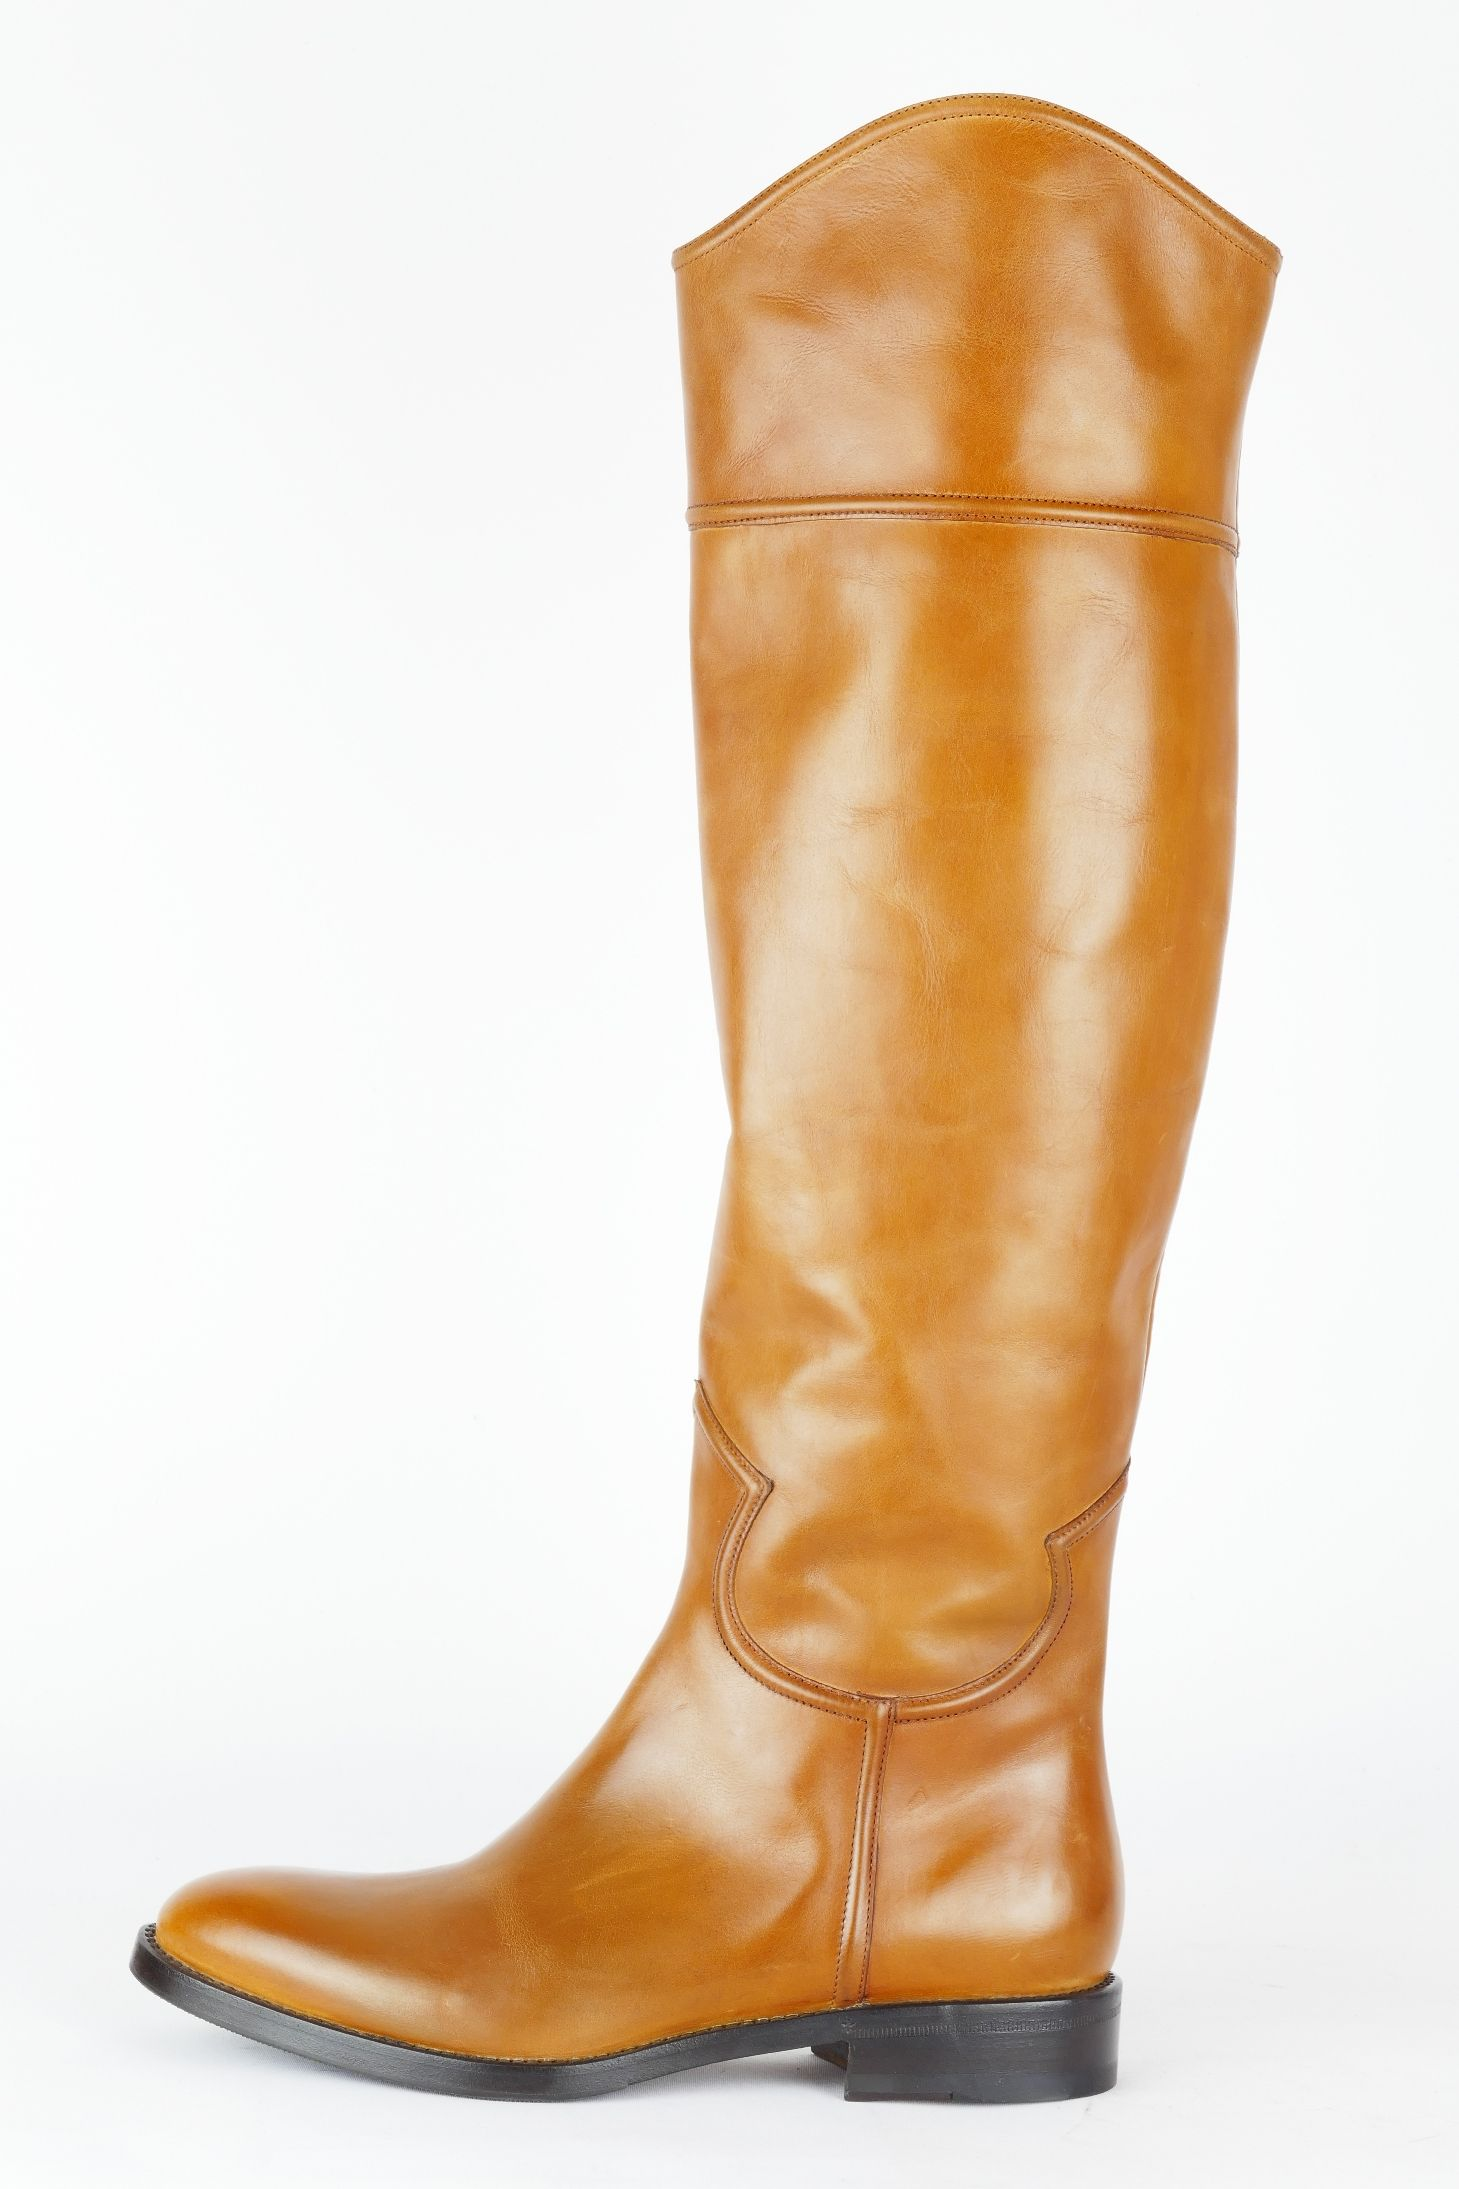 Cognac thigh boots and jeans outfit   Stiefel, Jeans stiefel